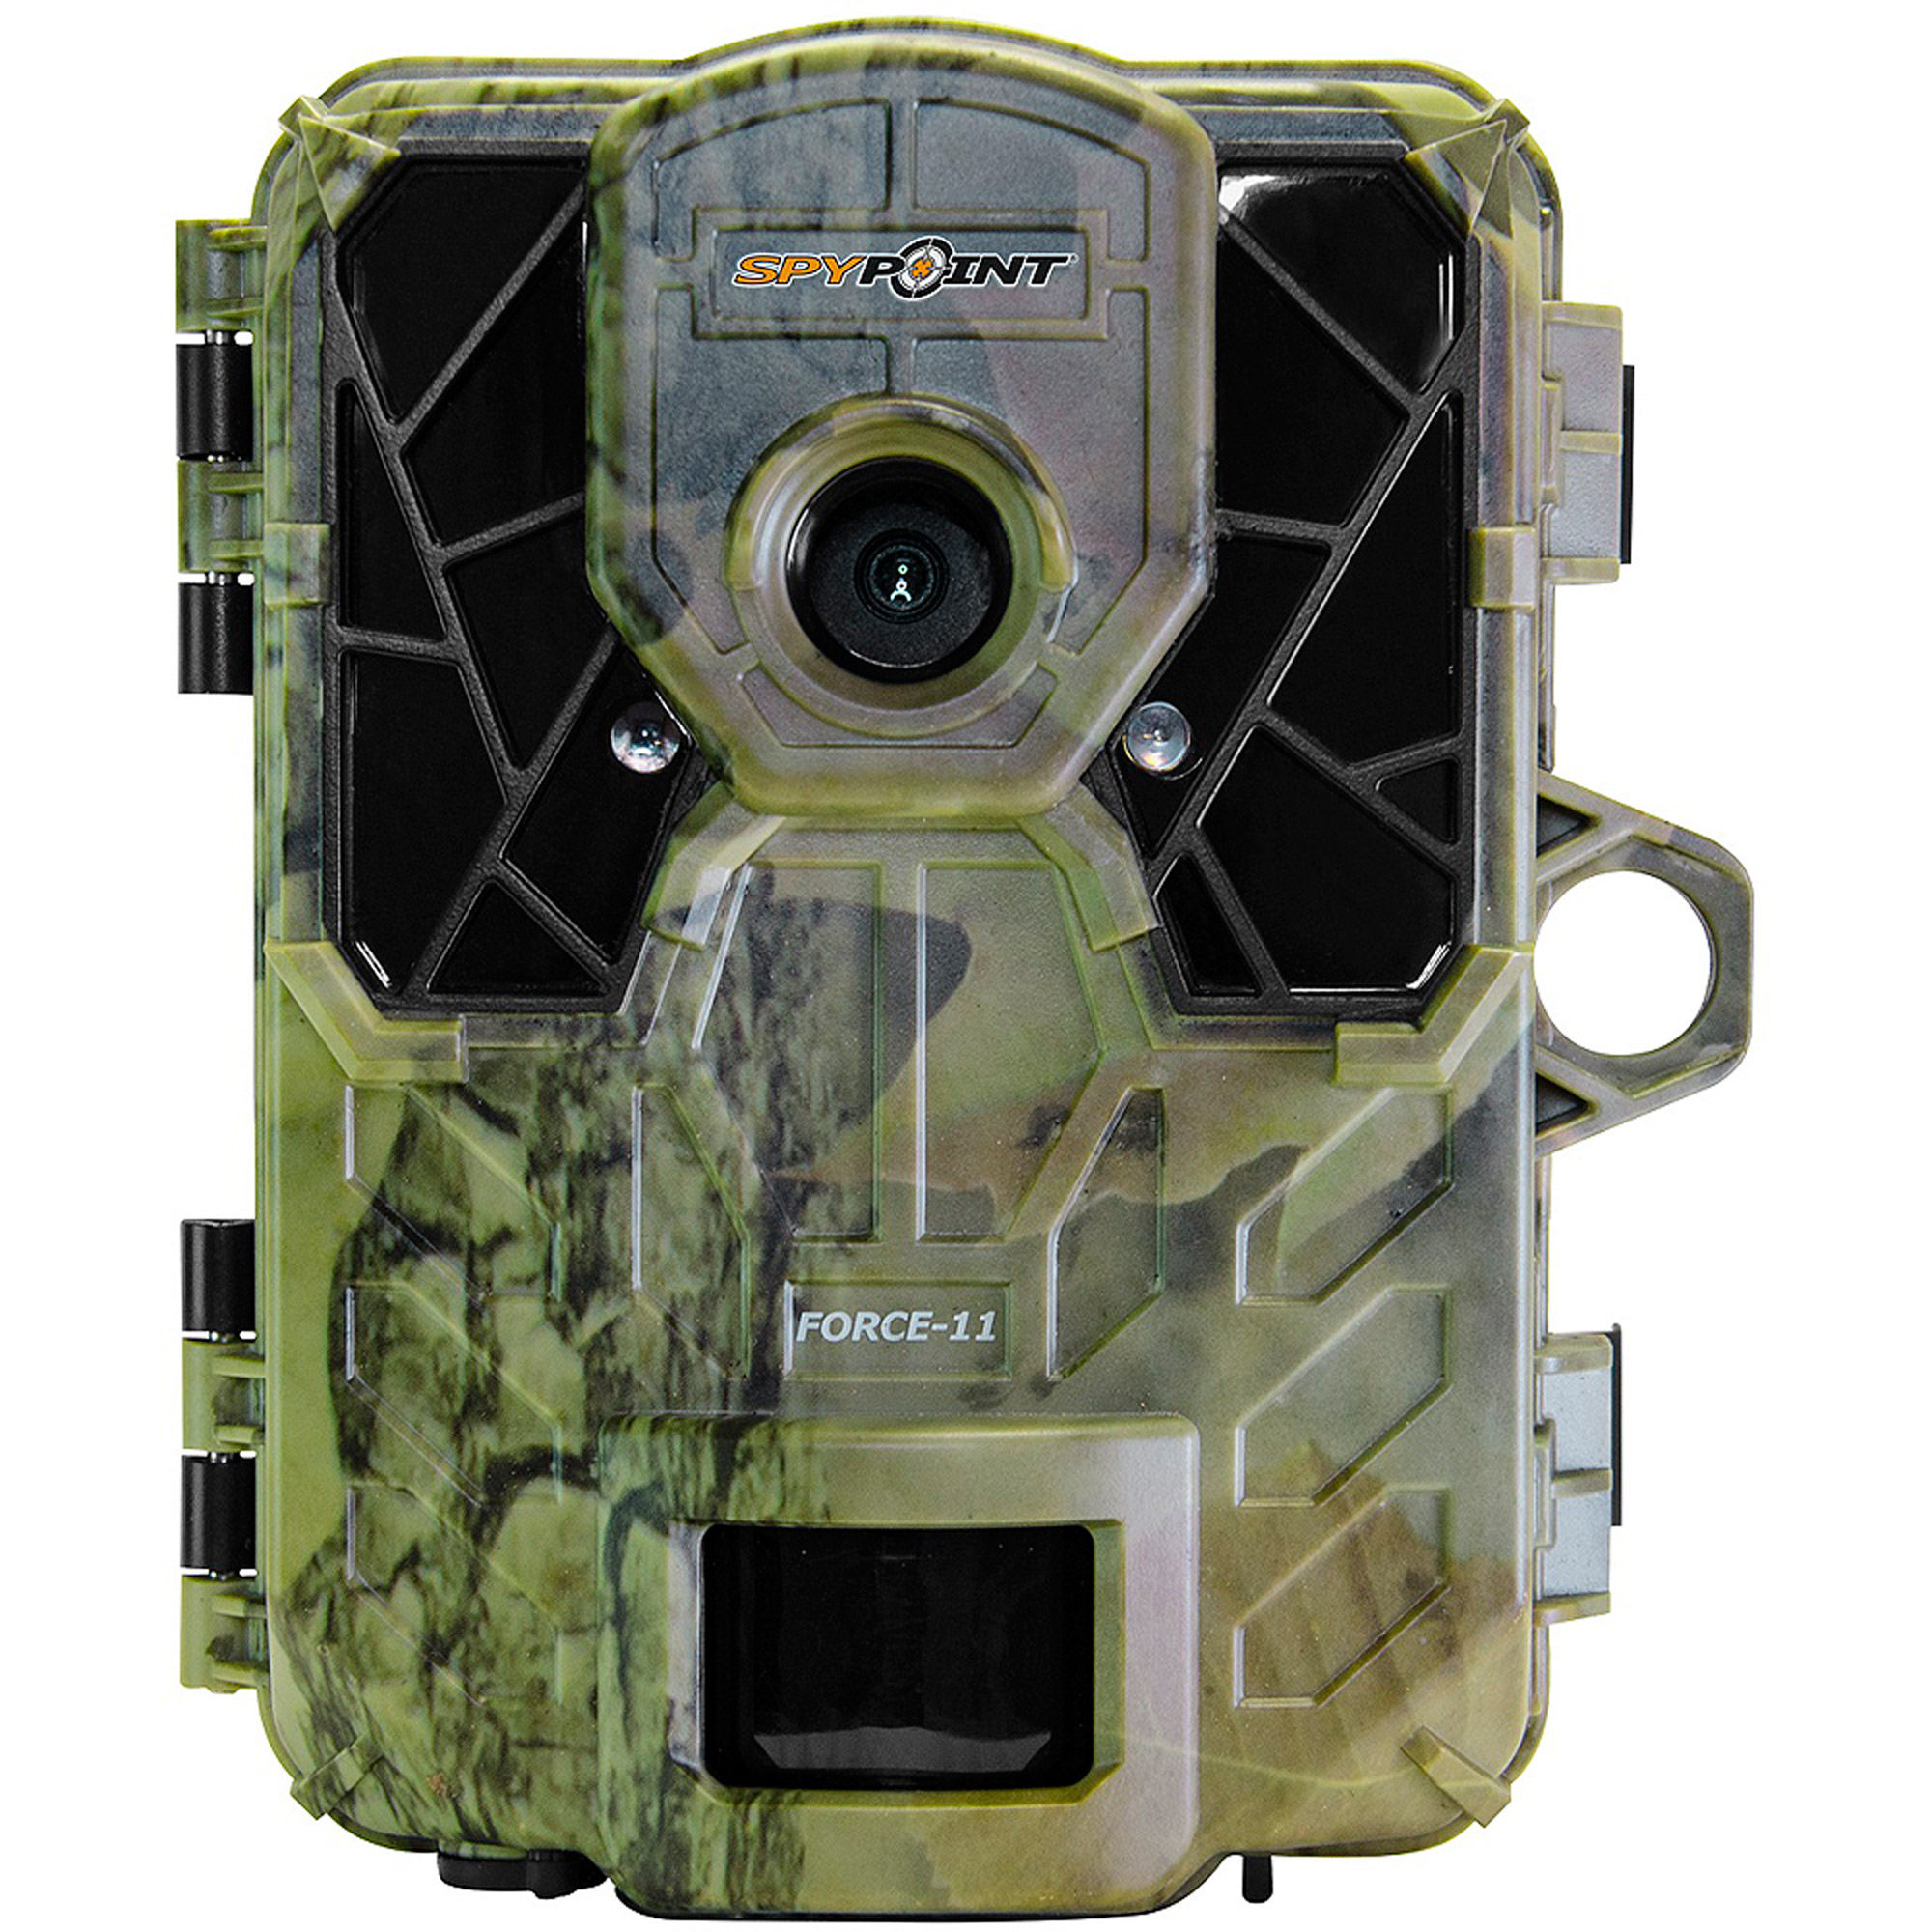 Spypoint Force-11 Trail Camera